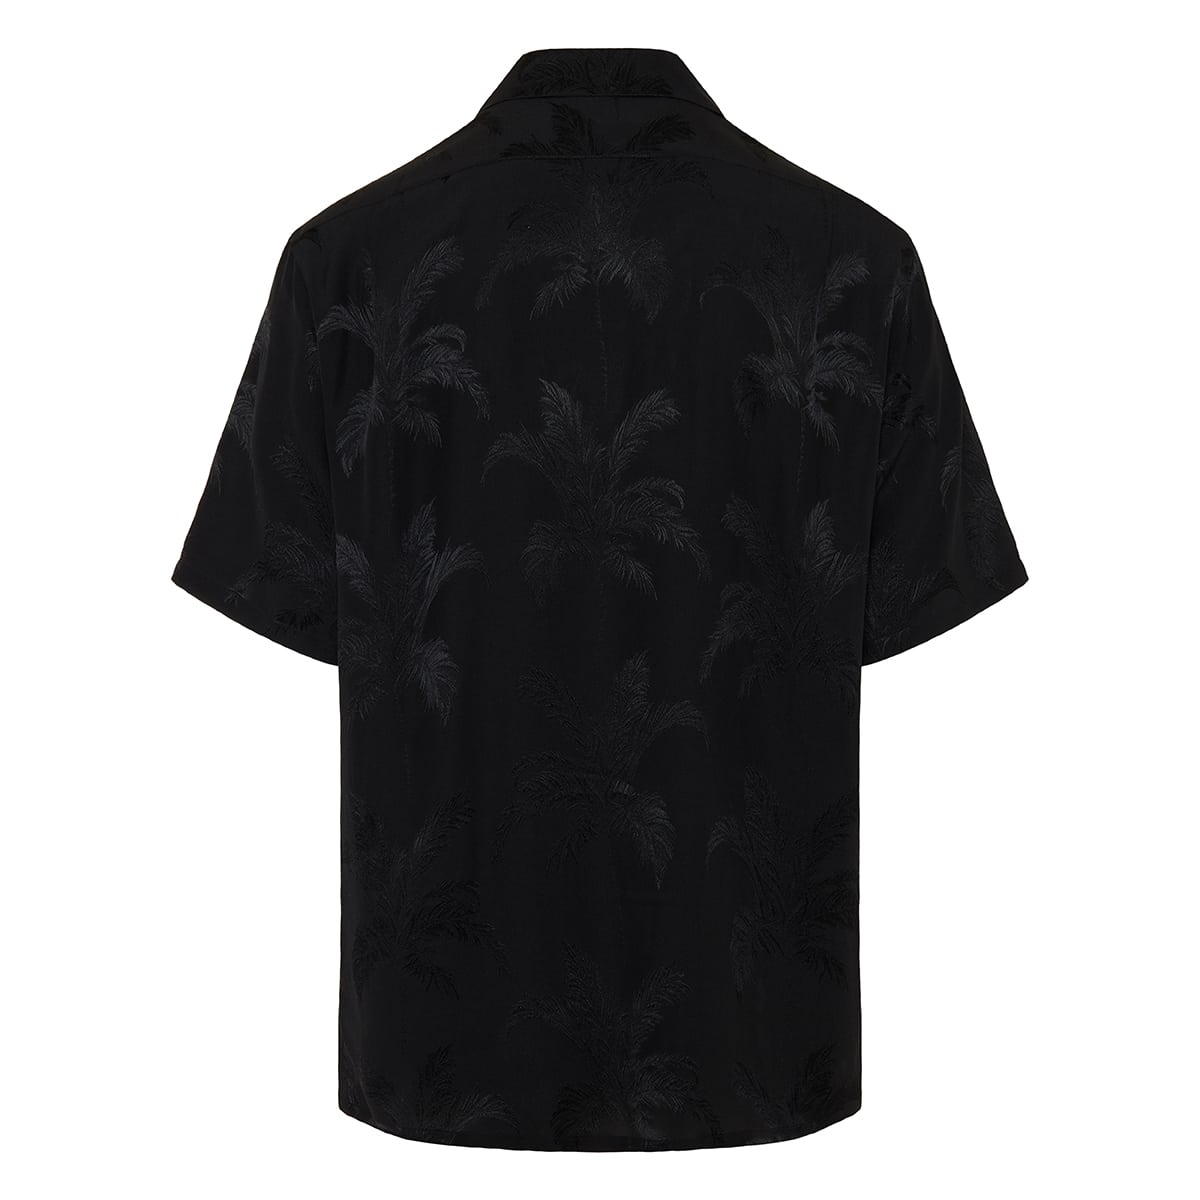 Palm jacquard short-sleeved shirt